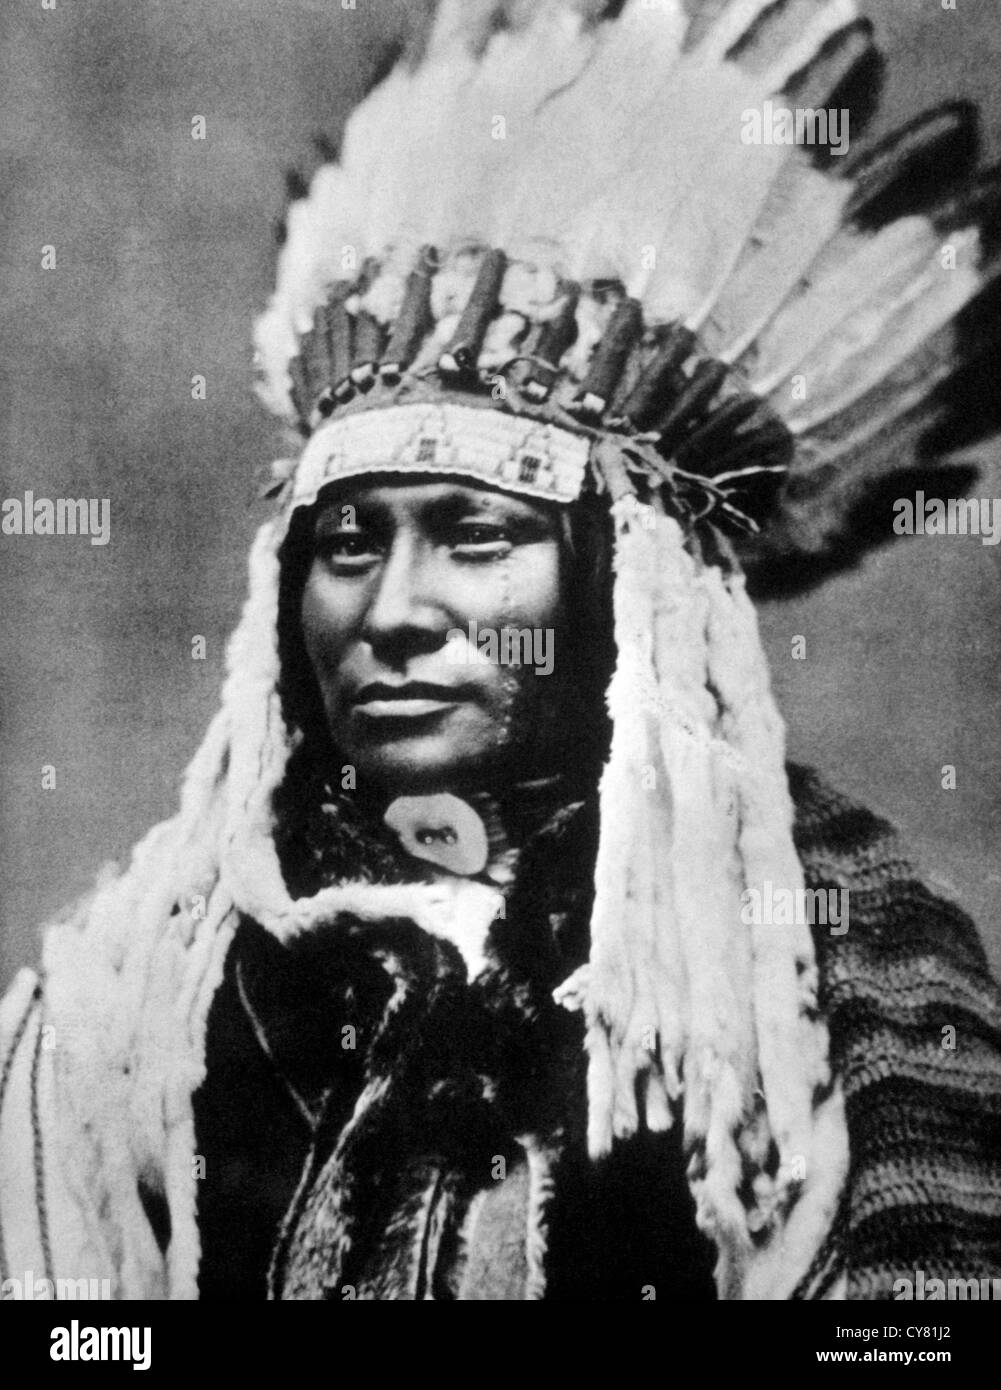 Rain in the Face, Hunkpapa Sioux Chief, Portrait - Stock Image